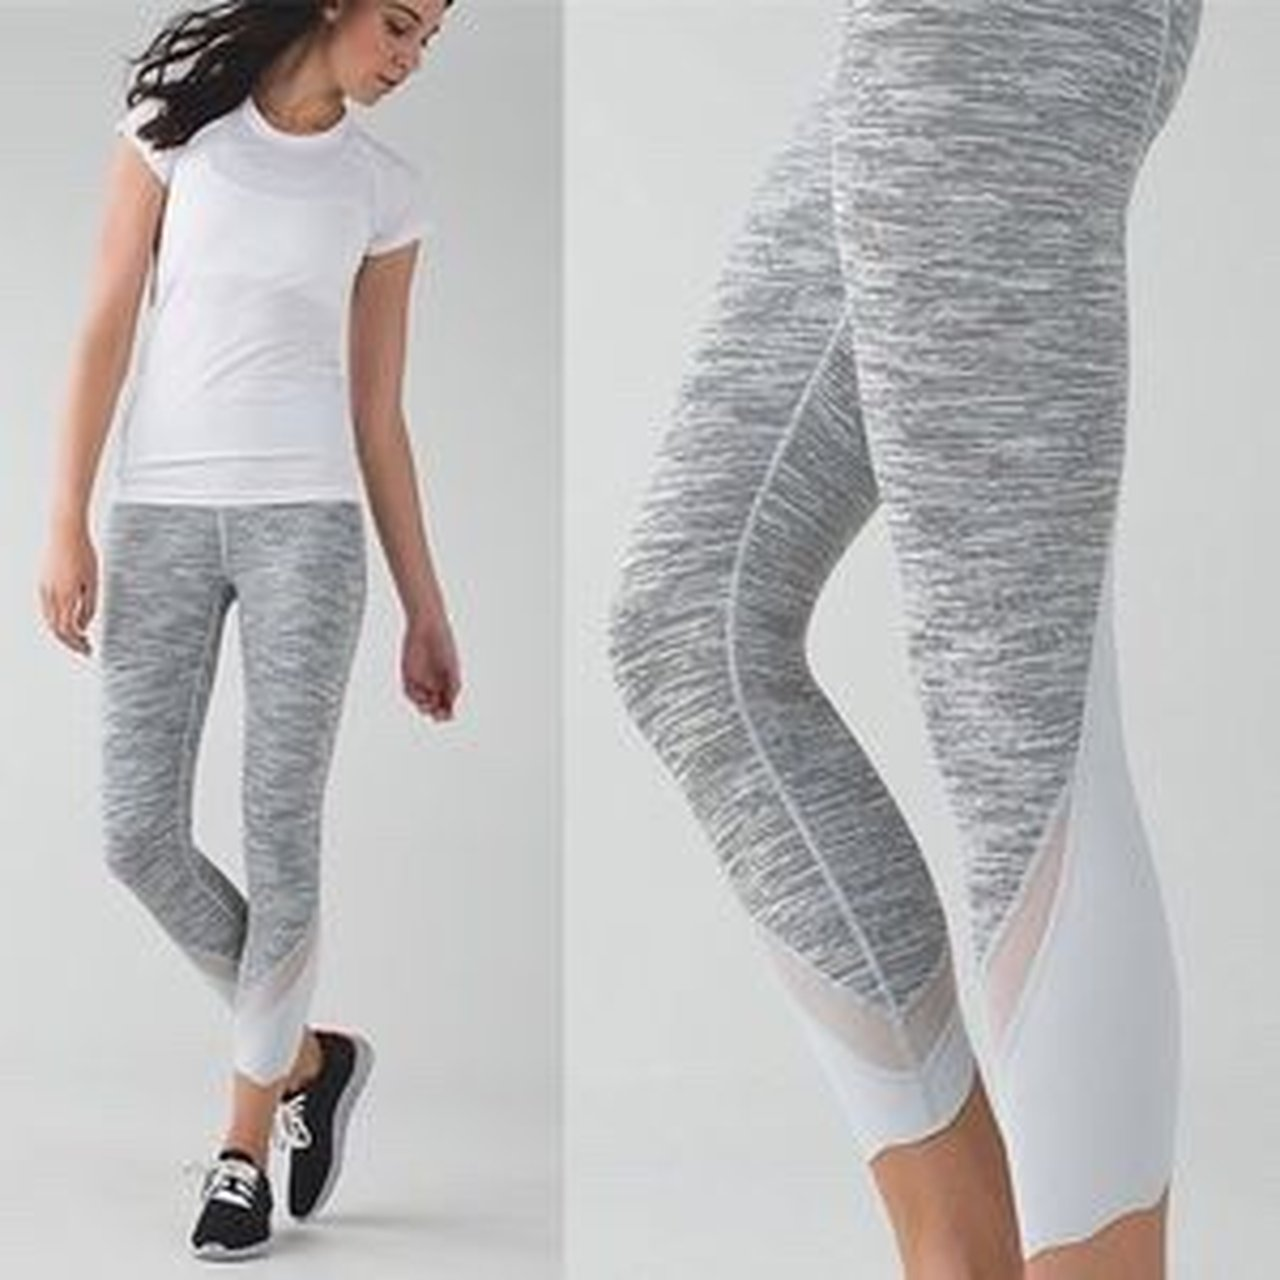 dae807159 Lululemon grey and white athletica yoga leggings Size 10 - Depop